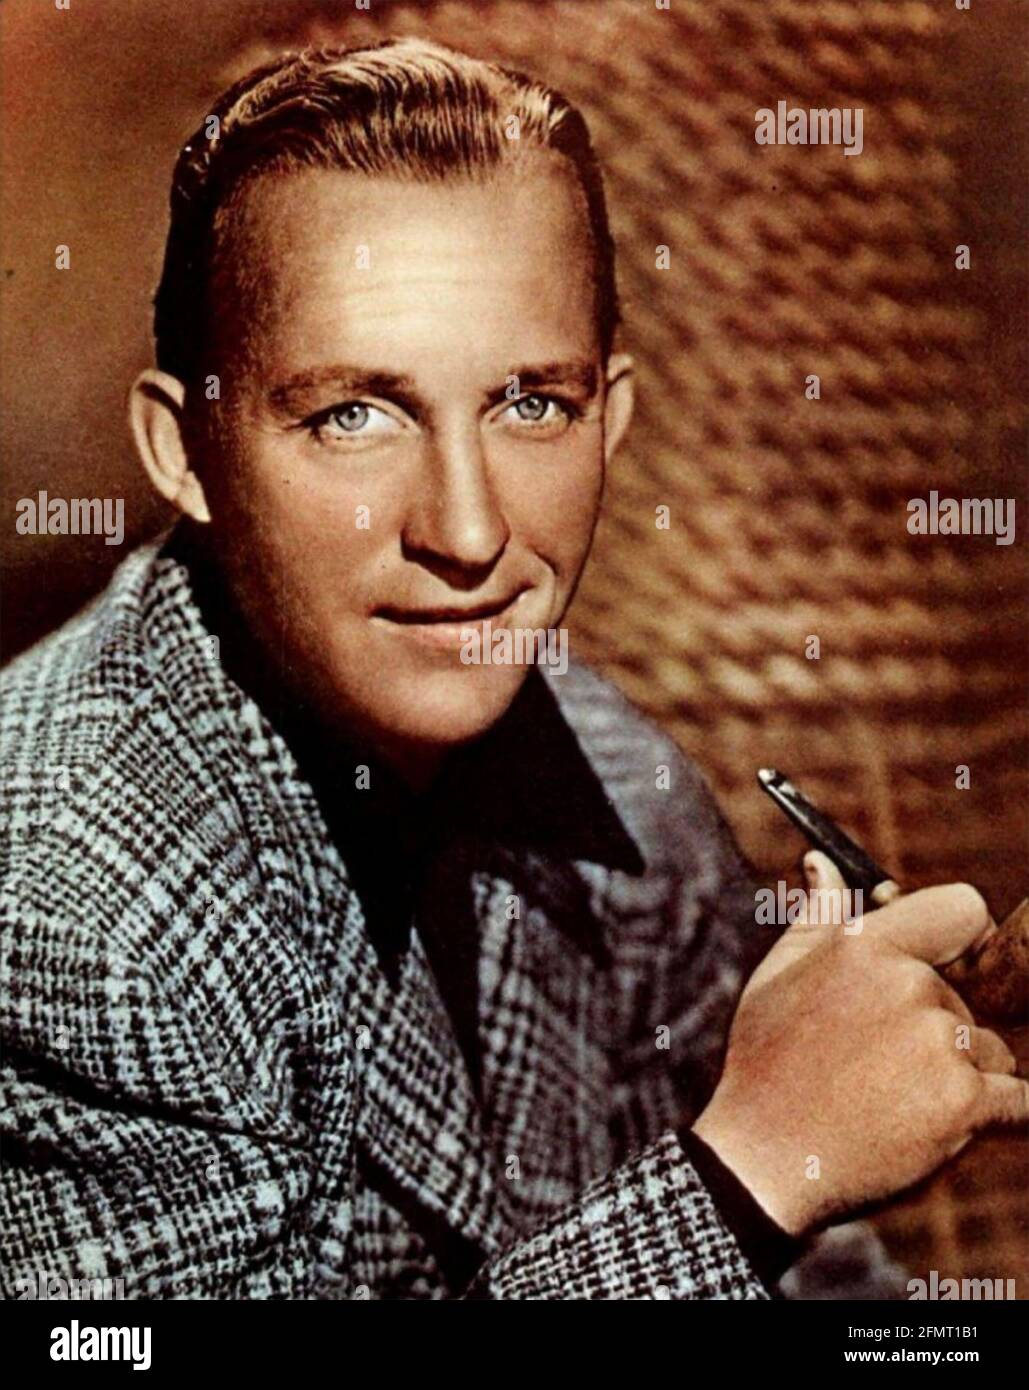 BING CROSBY (1903-1977) American, singer and film actor about 1950 Stock Photo